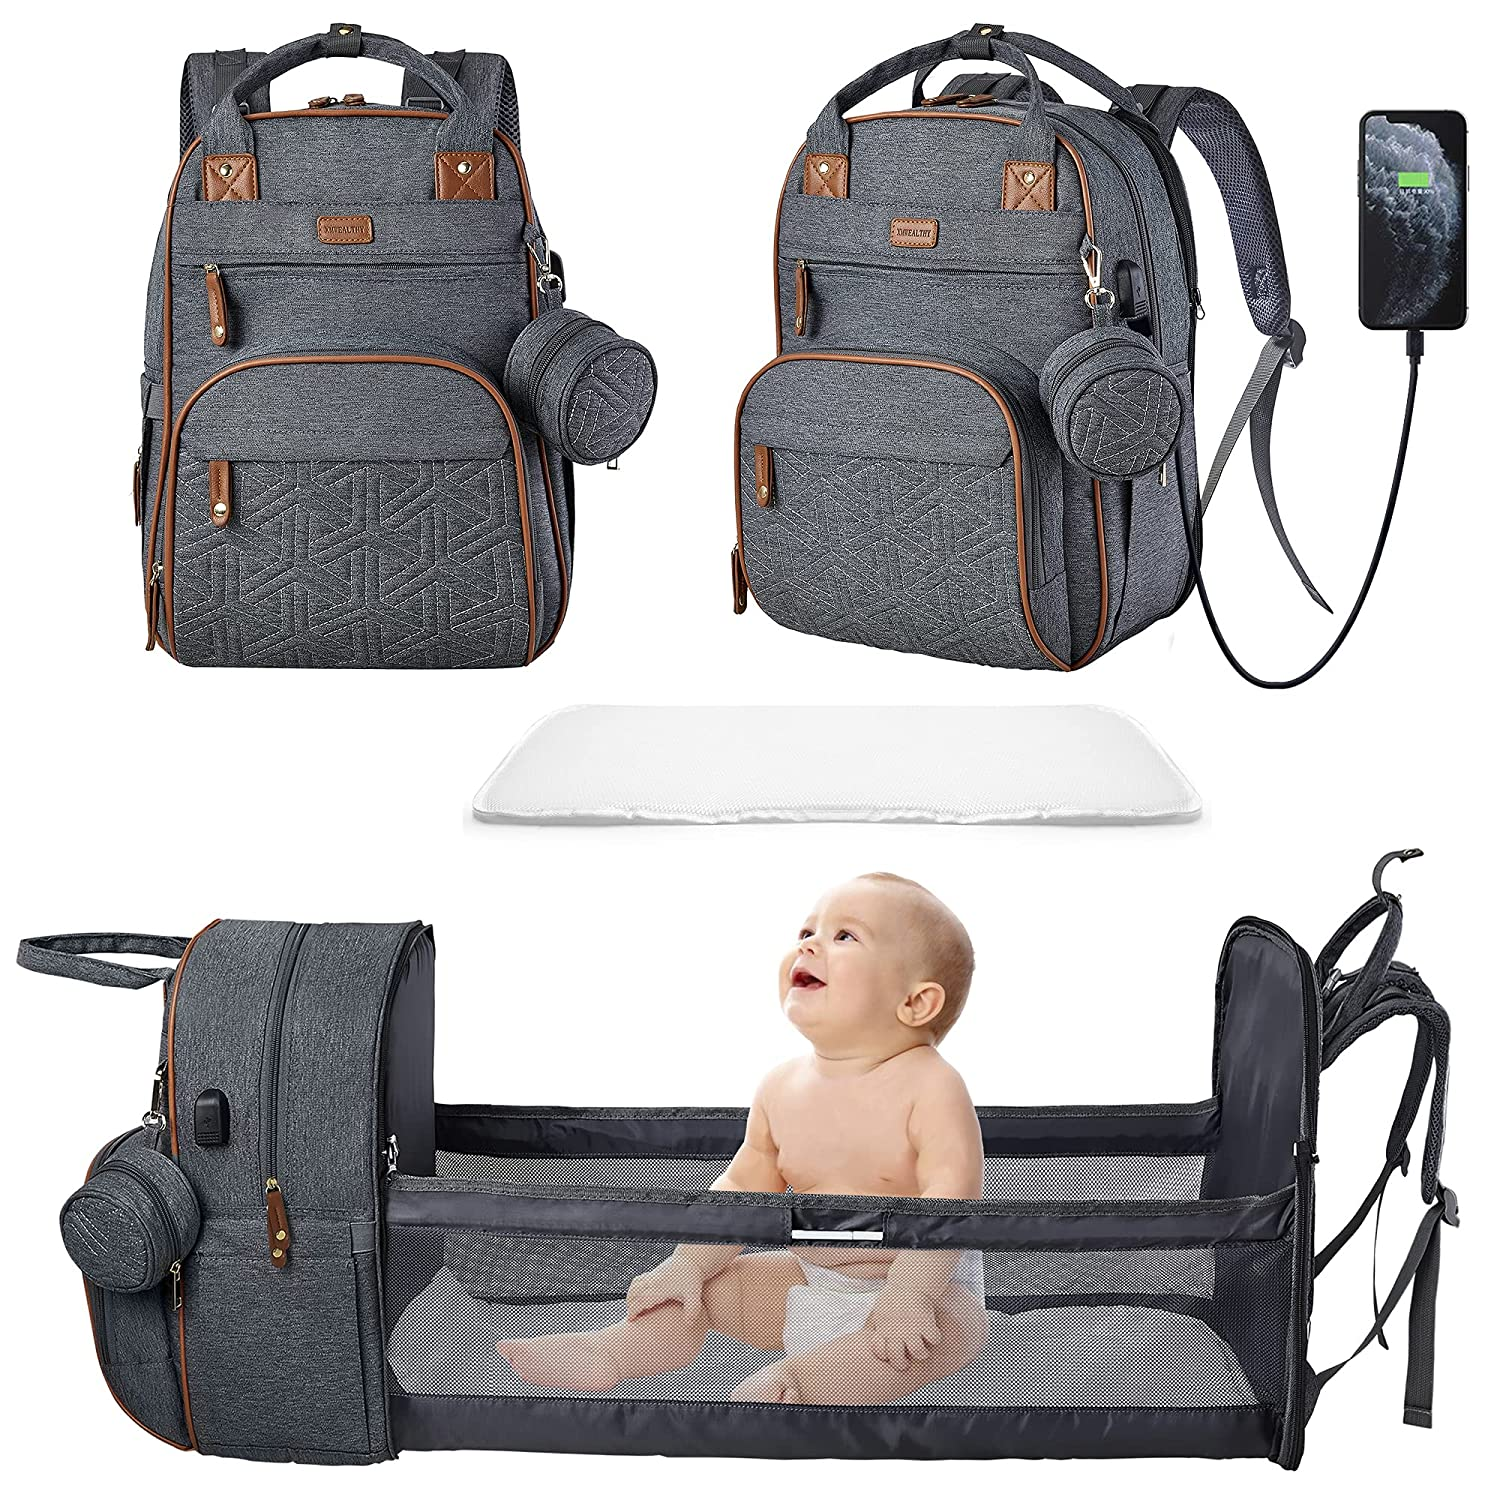 Diaper Bag Backpack for Baby Diaper Bag with Changing Station Portable Diaper Backpack Large Capacity Travel Foldable Baby Bed with USB Charge for Dad Mom Gift Grey